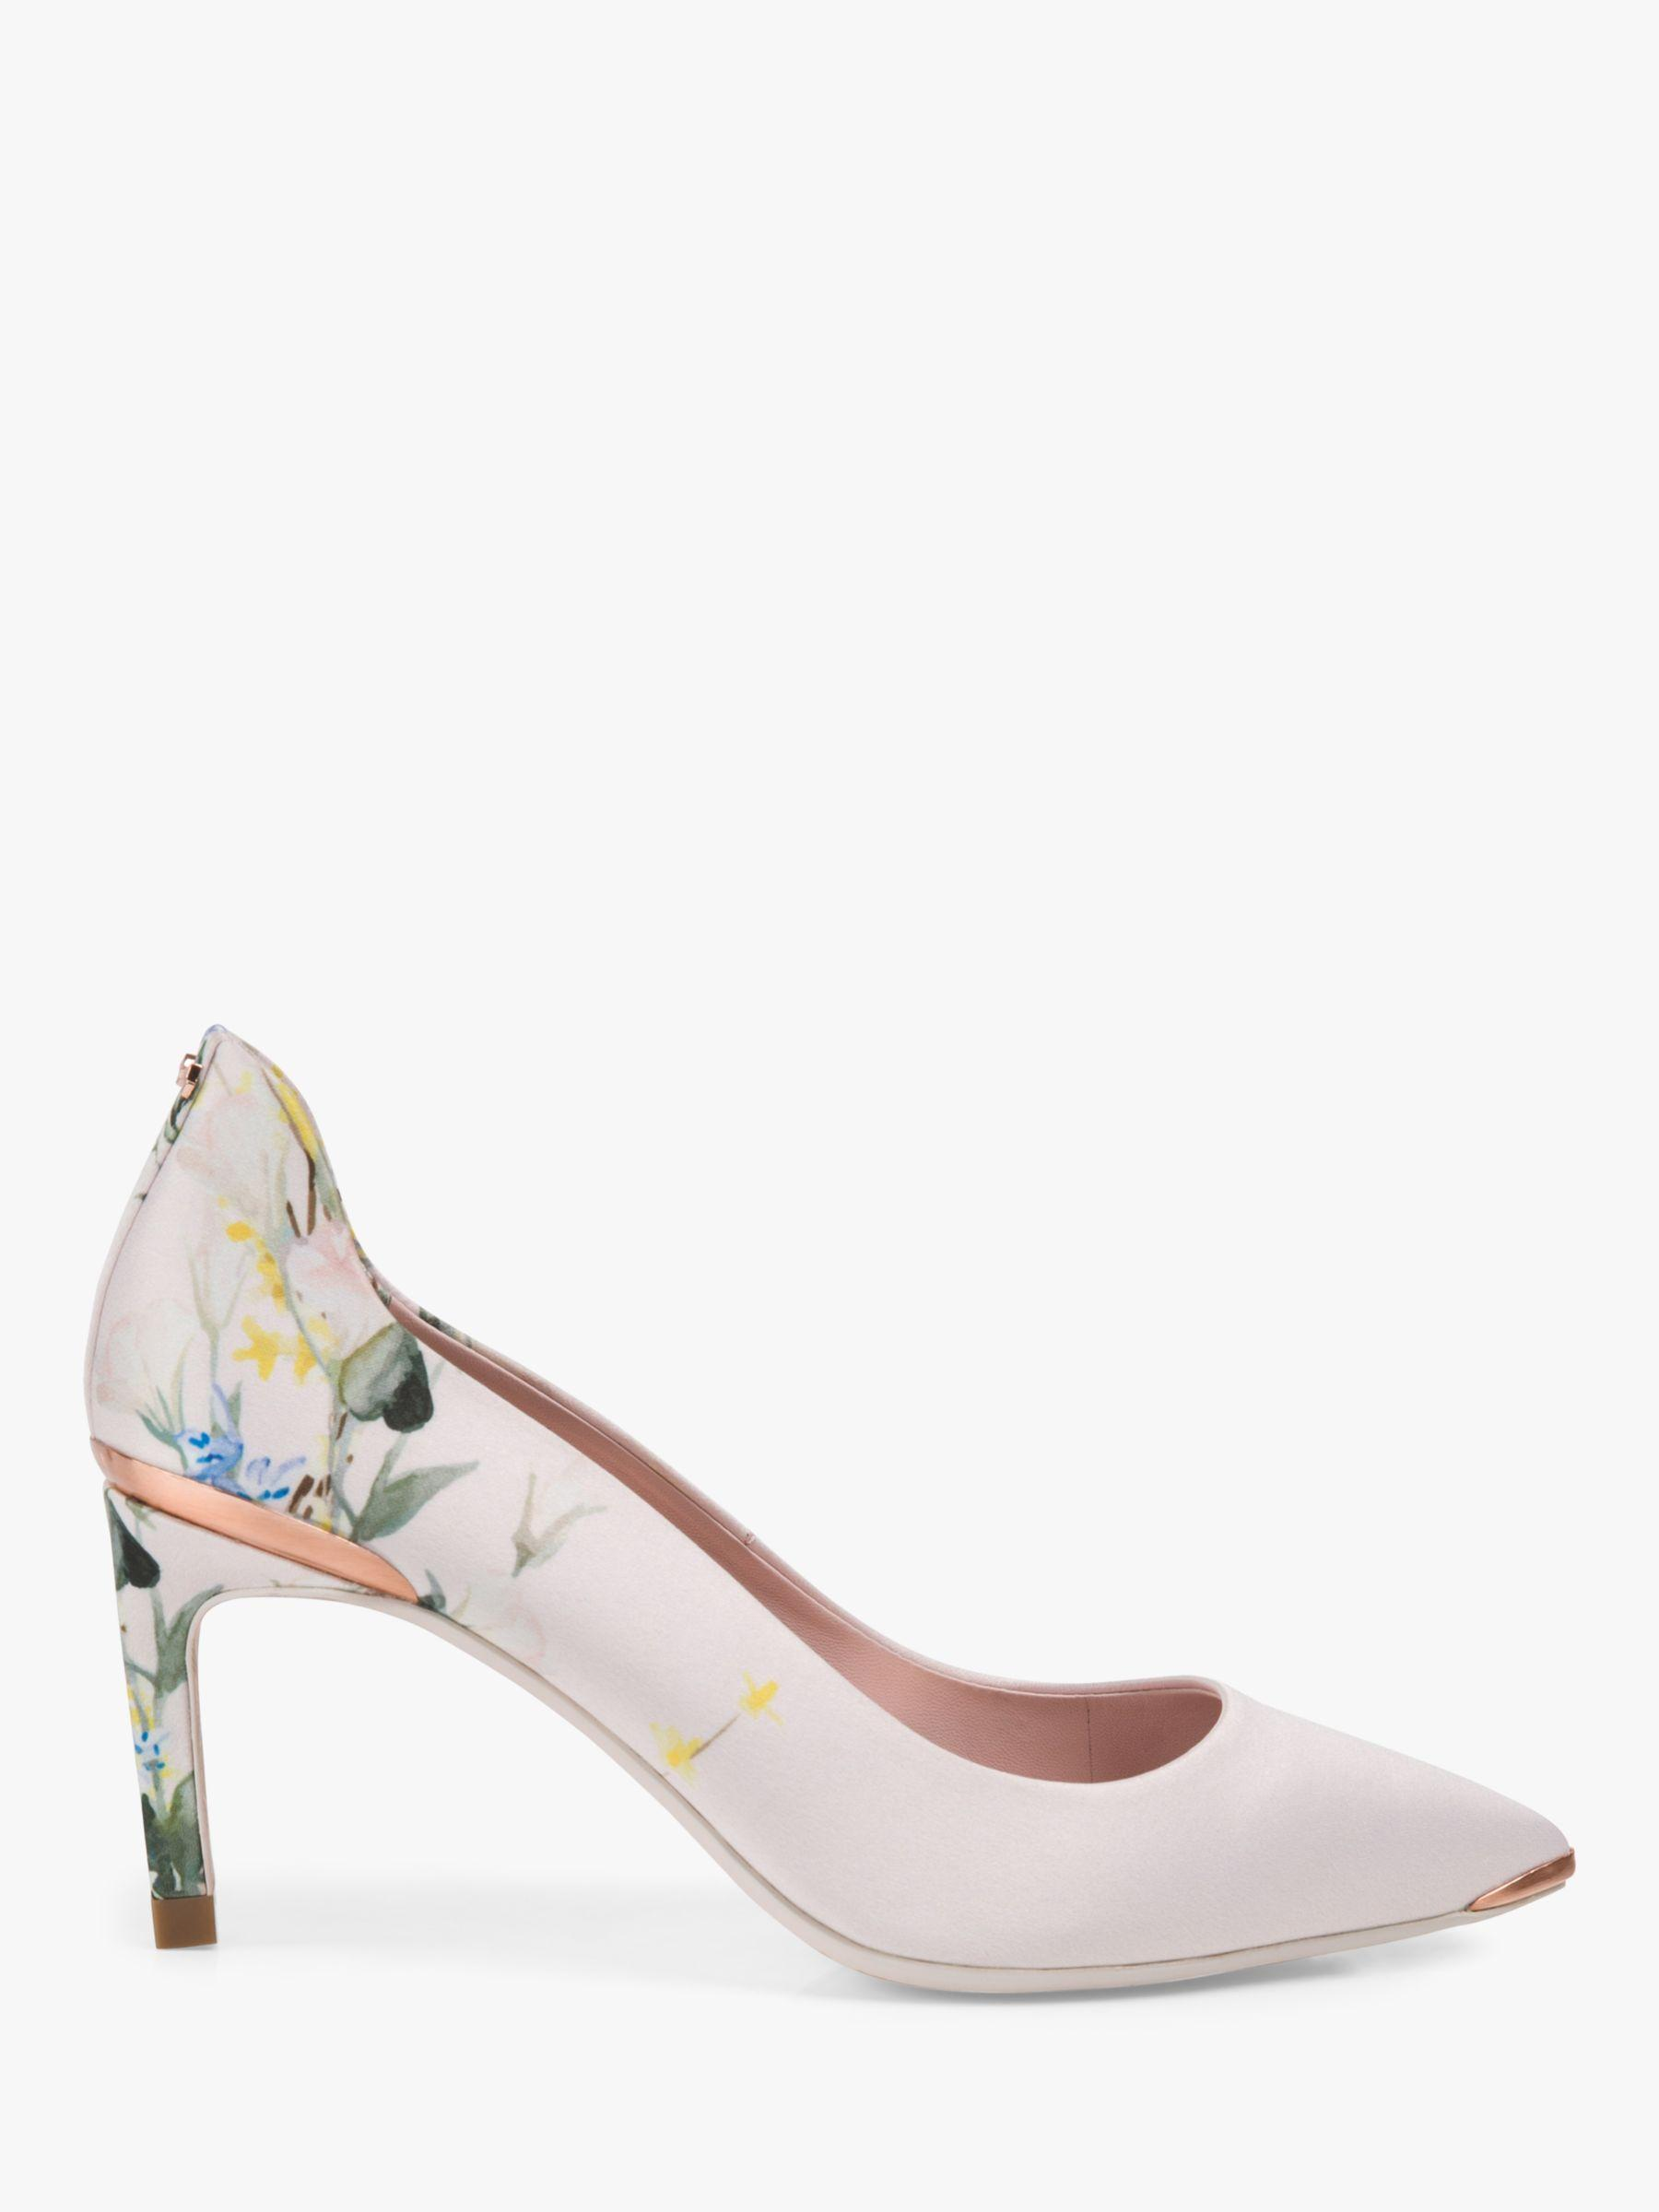 23fb4ad12 Ted Baker Printed High Heel Courts in Pink - Save 20% - Lyst